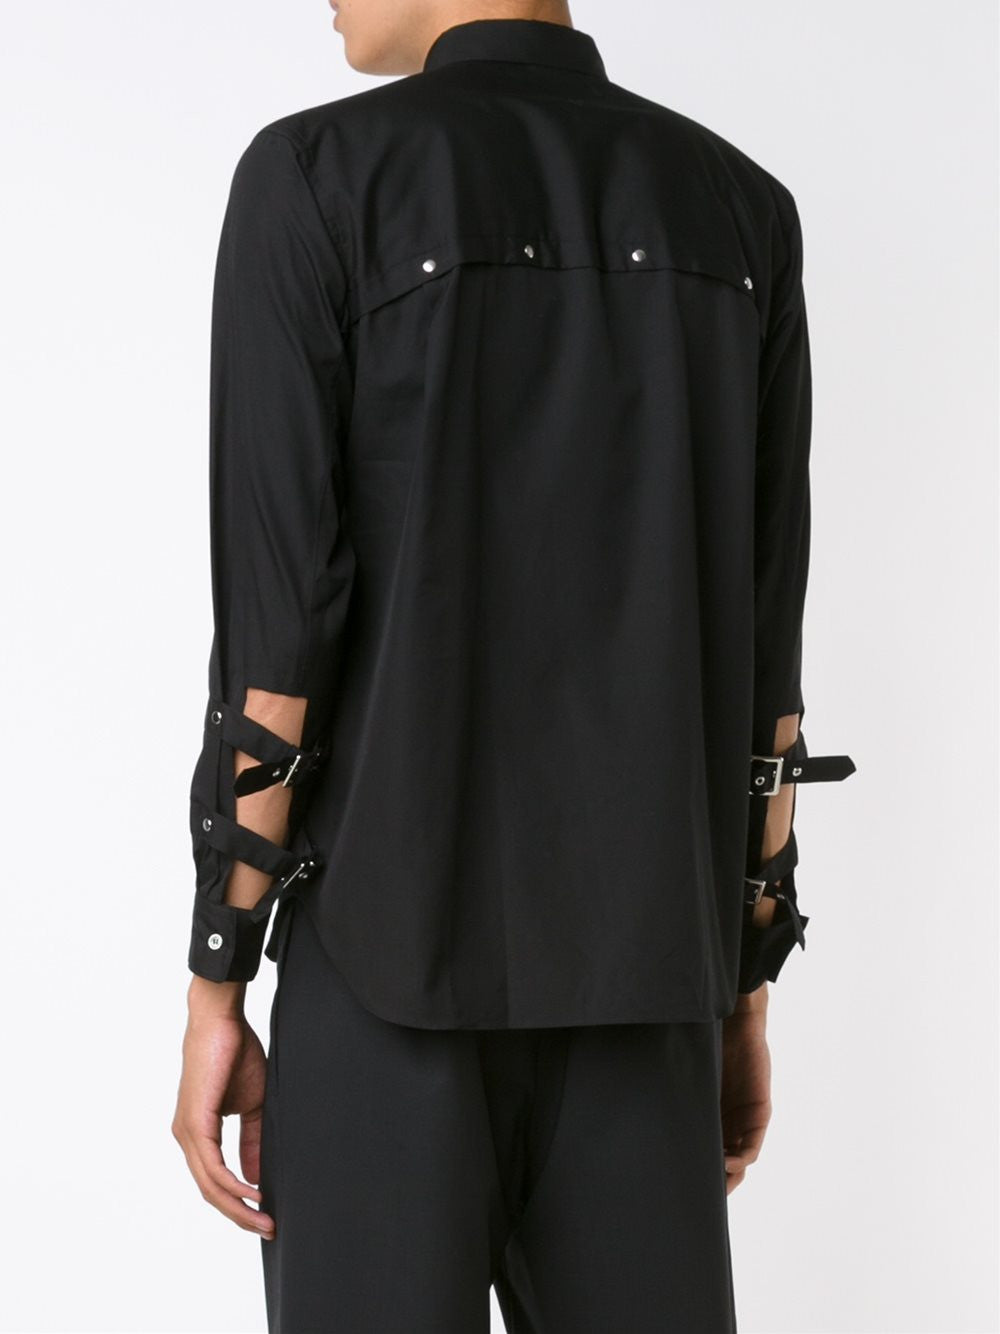 Cotton Armor Shirt | PR-B005-051